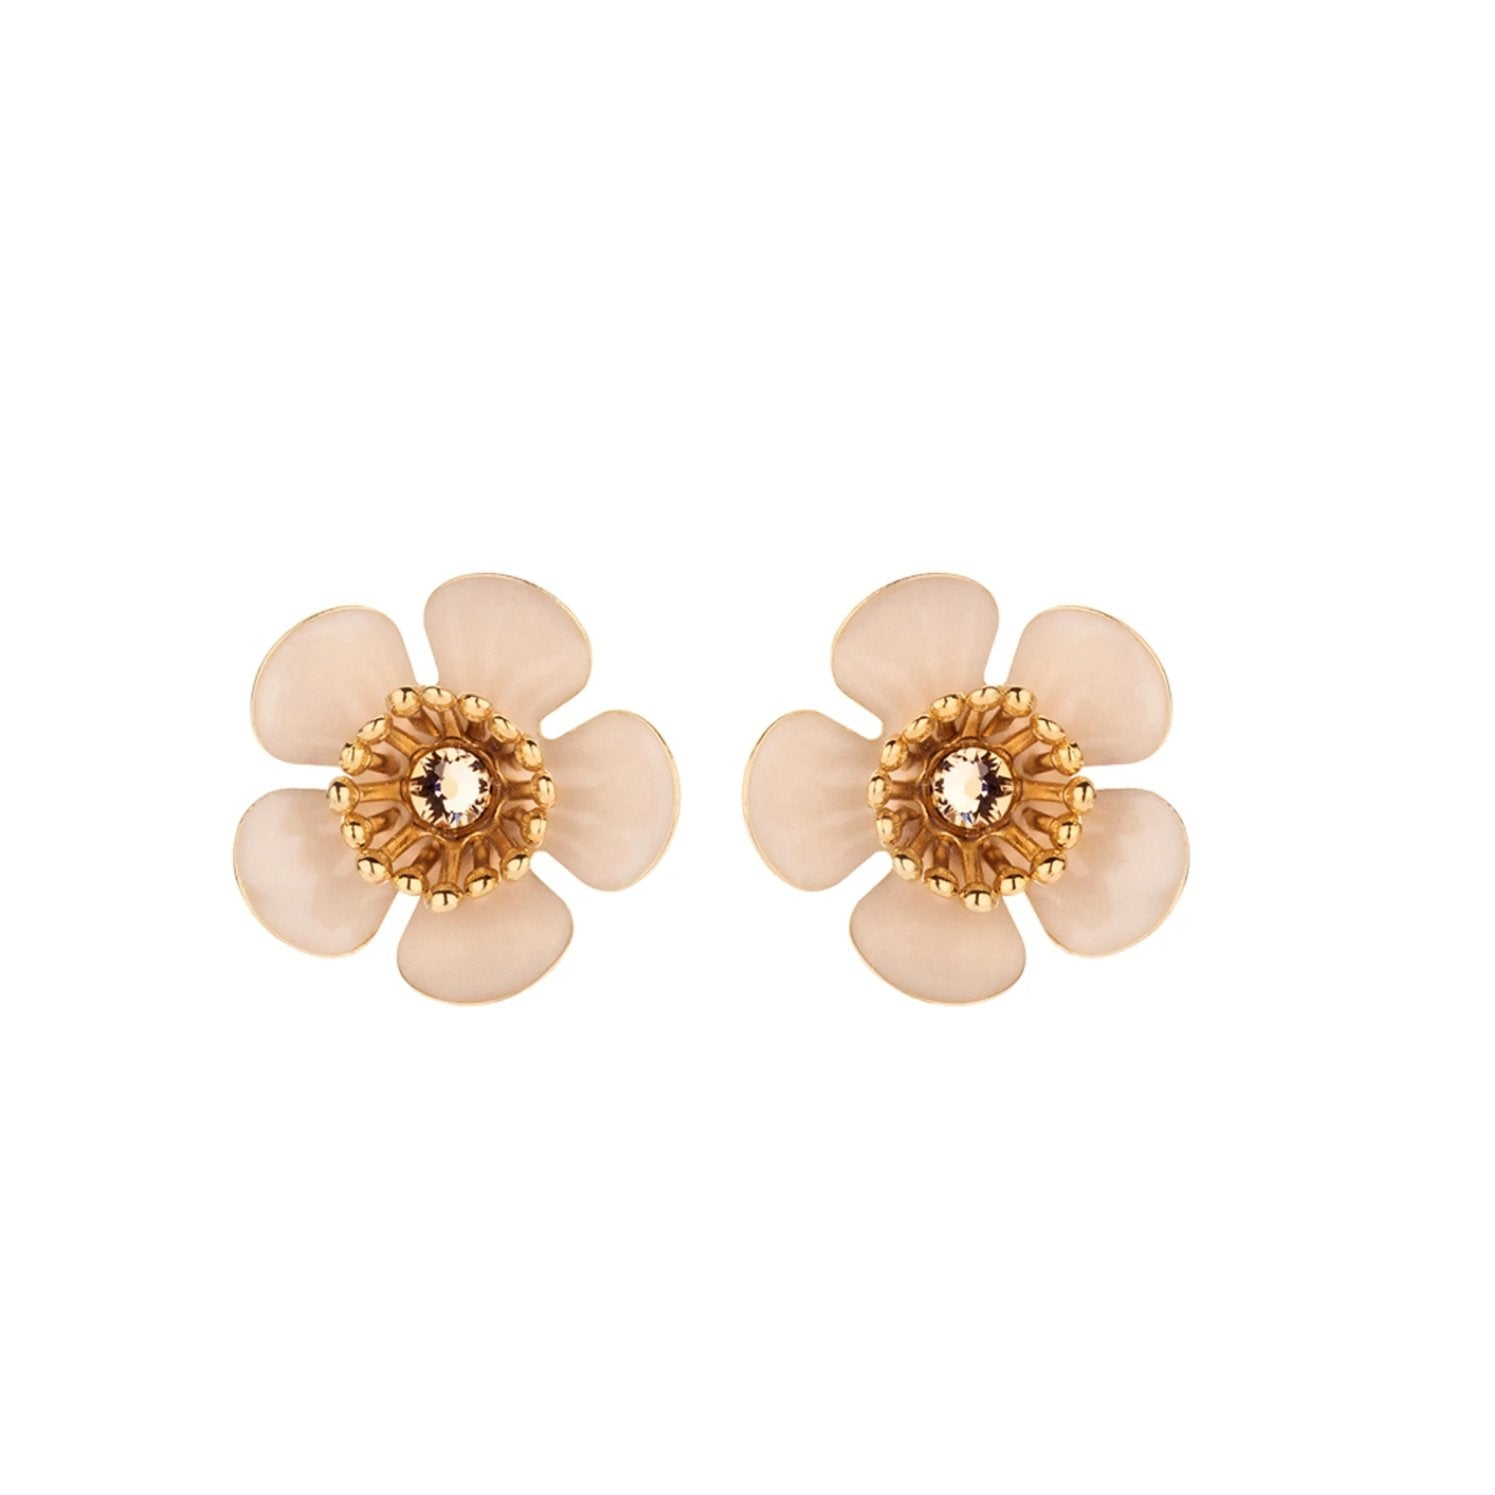 Gina mini enamel flower nude earrings